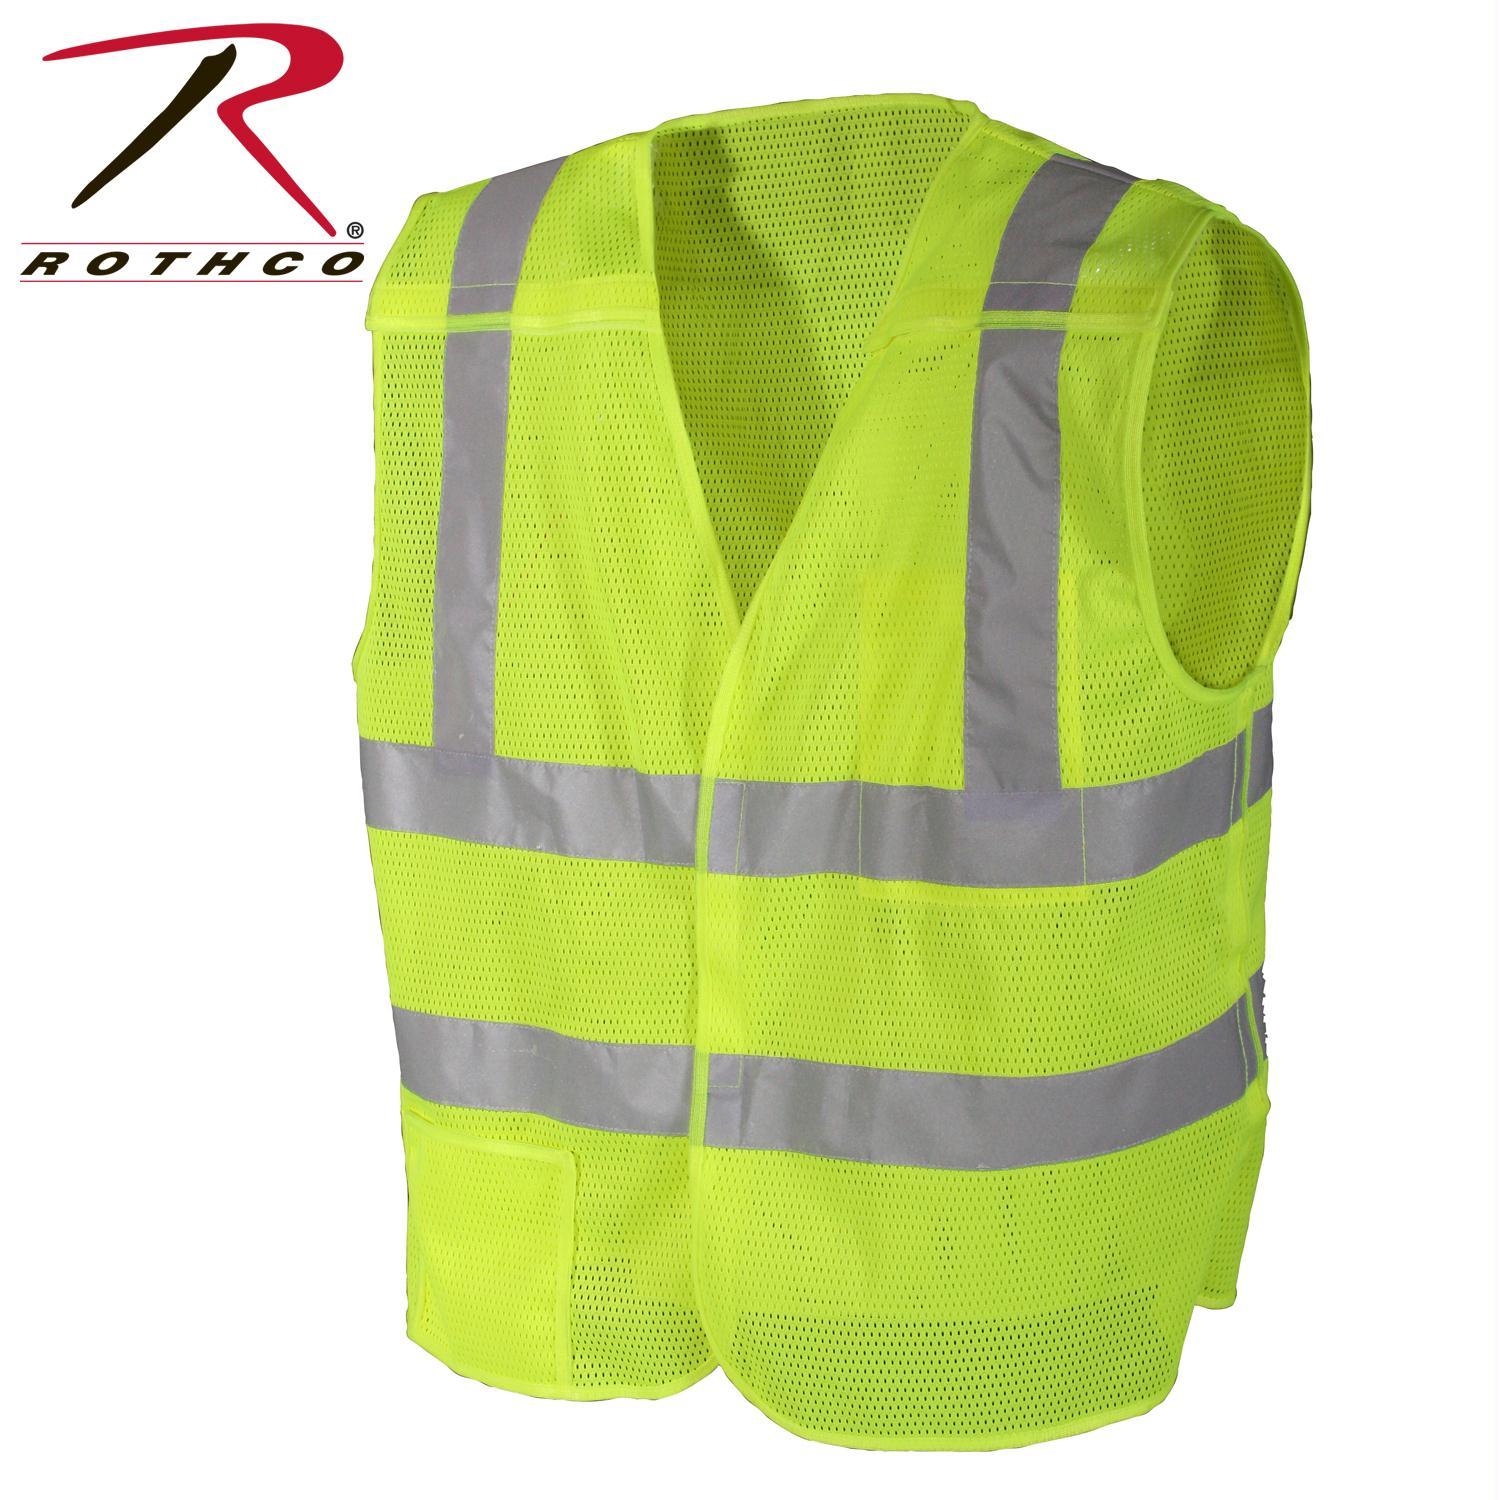 Rothco 5-point Breakaway Vest - Neon Yellow / Over Size